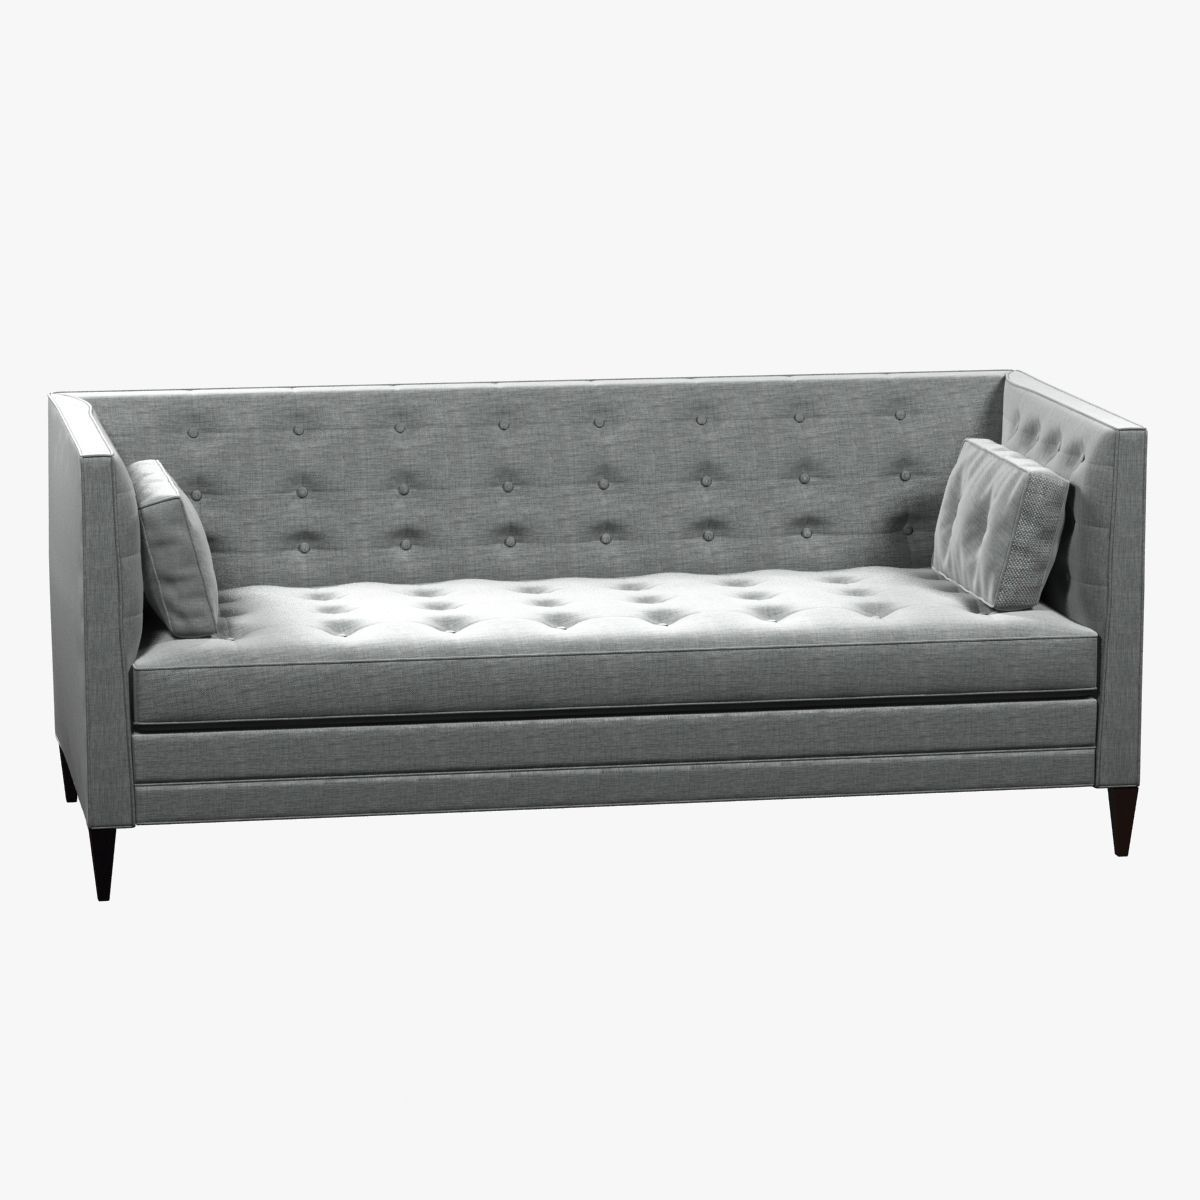 Fine Clancy Tufted Upholstered Sofa In Vangogh Fog 3D Model Download Free Architecture Designs Grimeyleaguecom